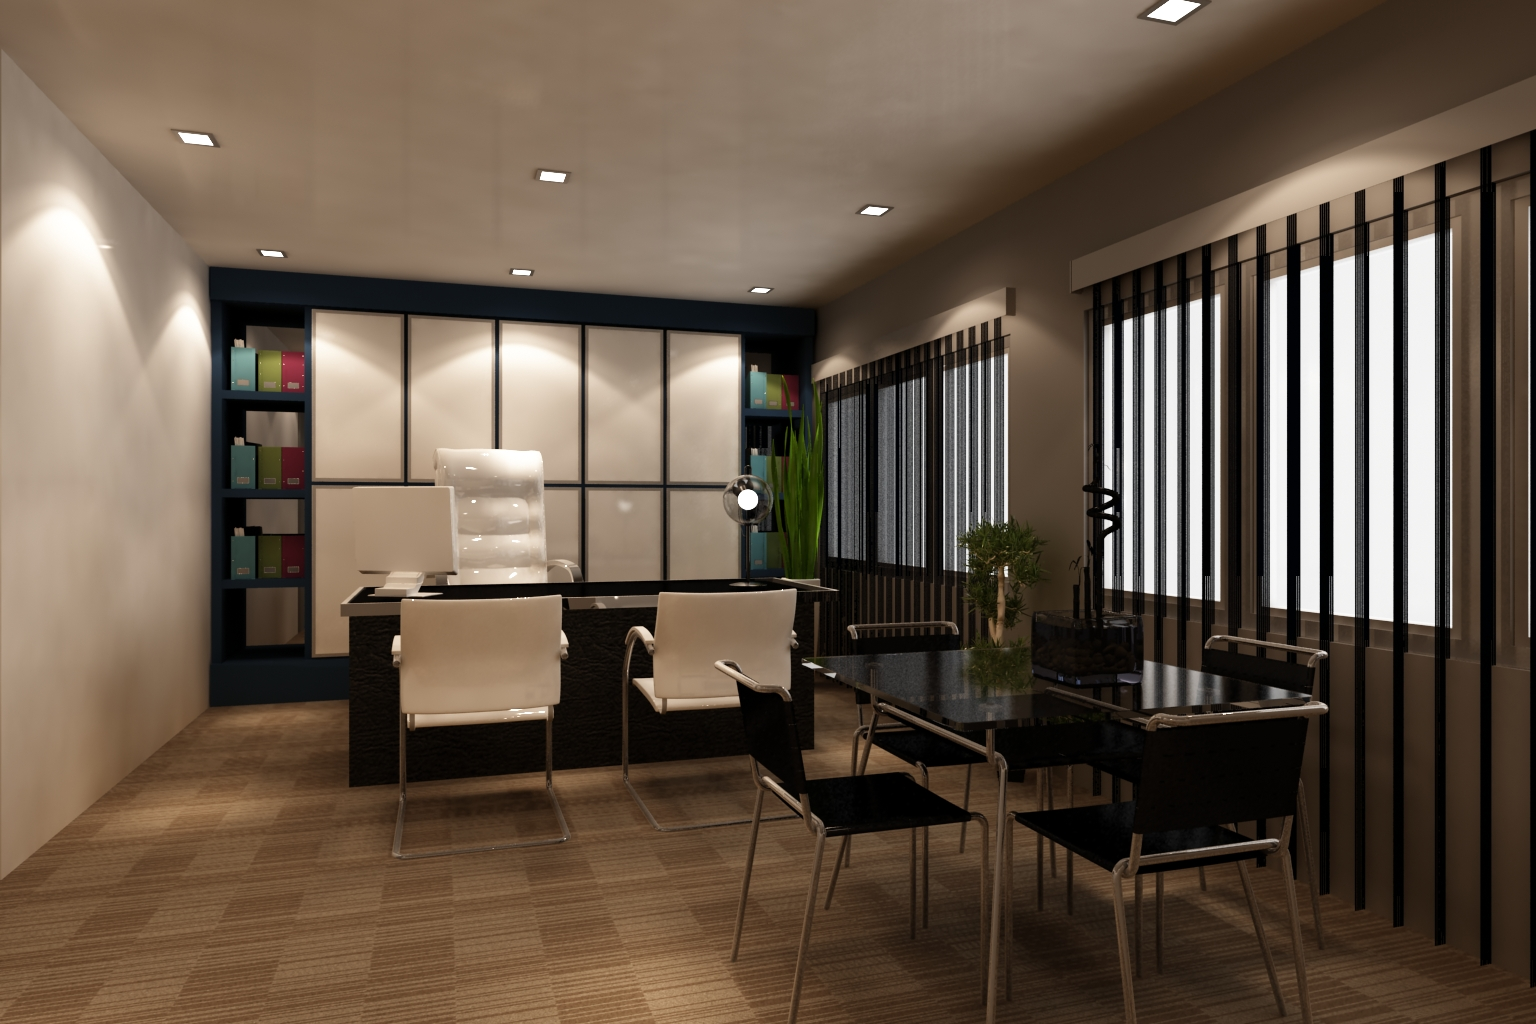 Create in your dream home 3d office design for Free 3d office design software